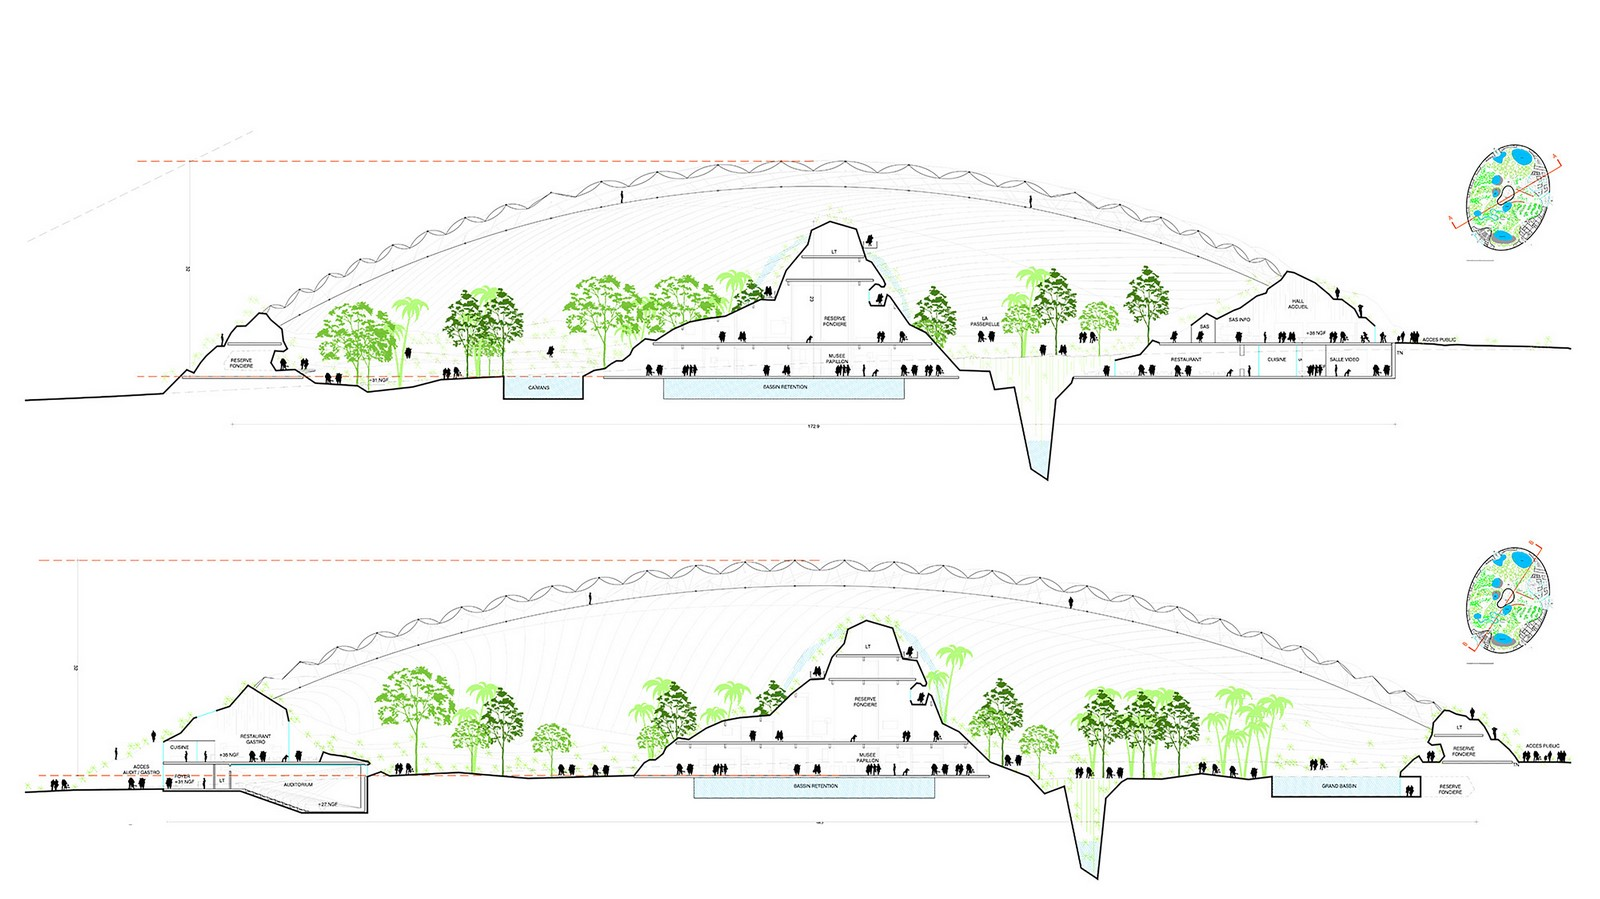 Designs Unveiled For The World's Largest Single- Domed Greenhouse Sheet8